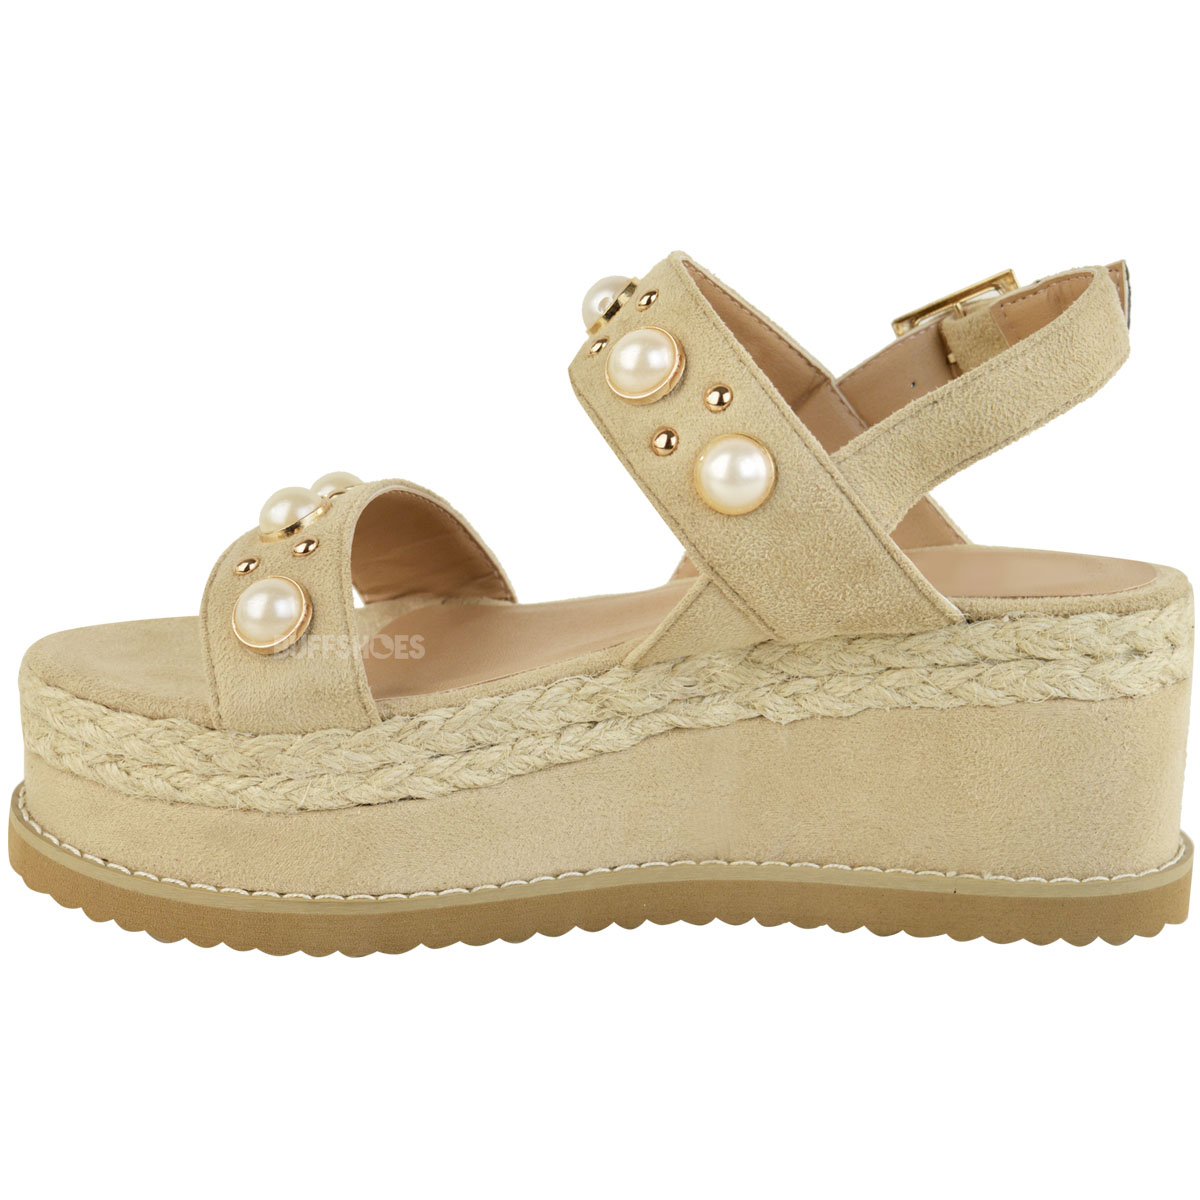 Shop for Olivia Miller 'Italia' Pearl Rhinestone Wedges. Free Shipping on orders over $45 at downloadsolutionles0f.cf - Your Online Shoes Outlet Store! Get 5% in rewards with Club O! -